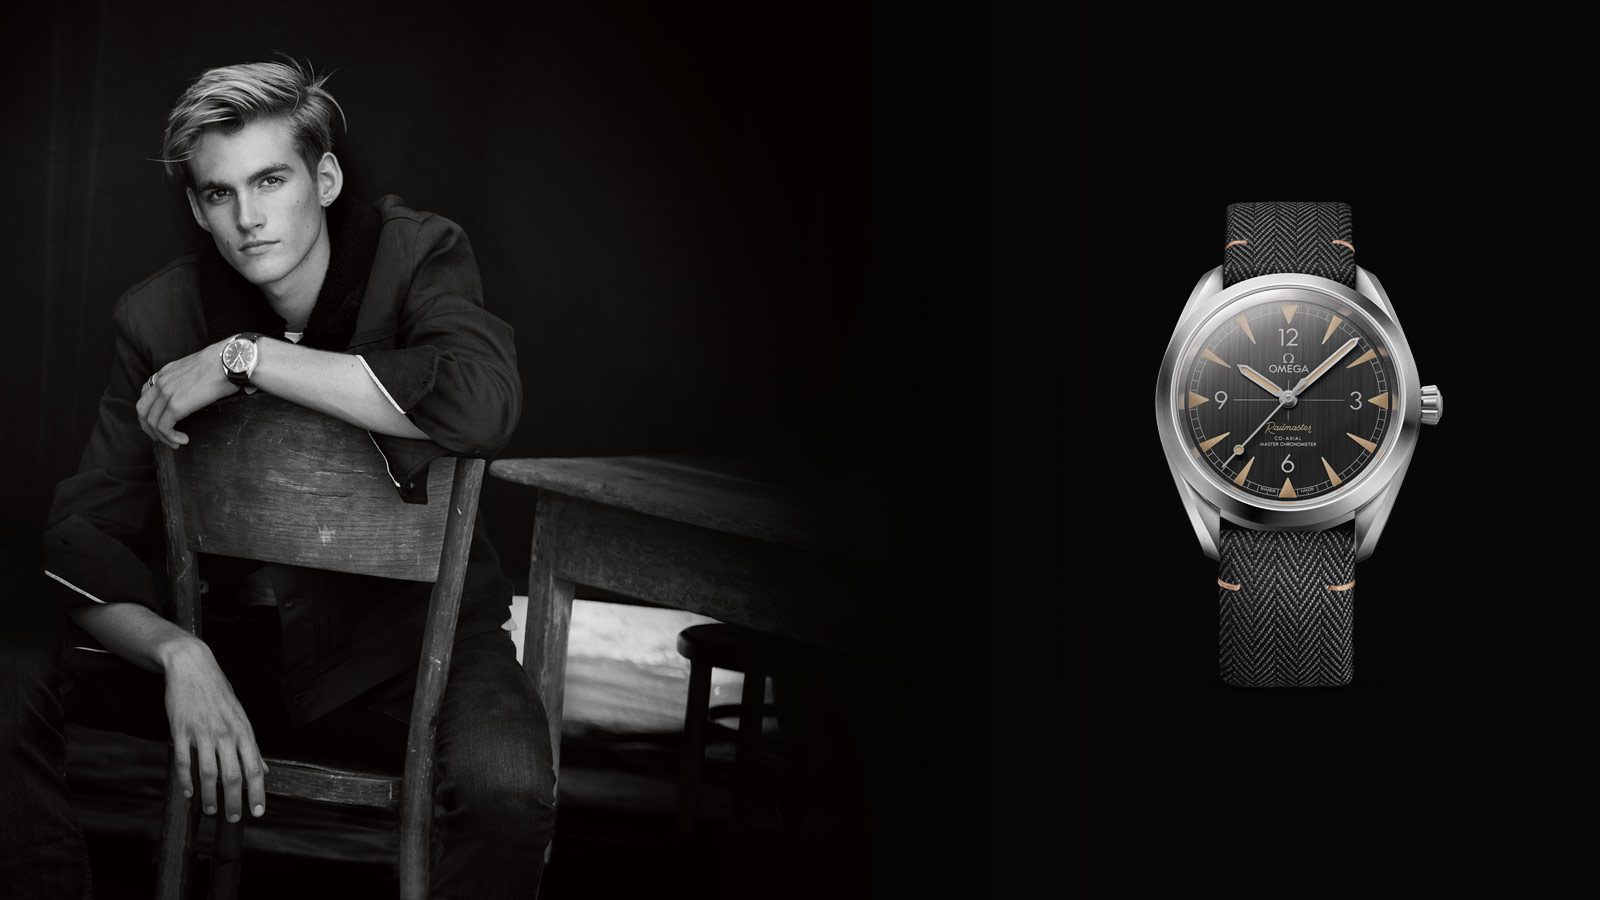 Omega®: Swiss Luxury Watches Since 1848 Caroussel 4 - 48580